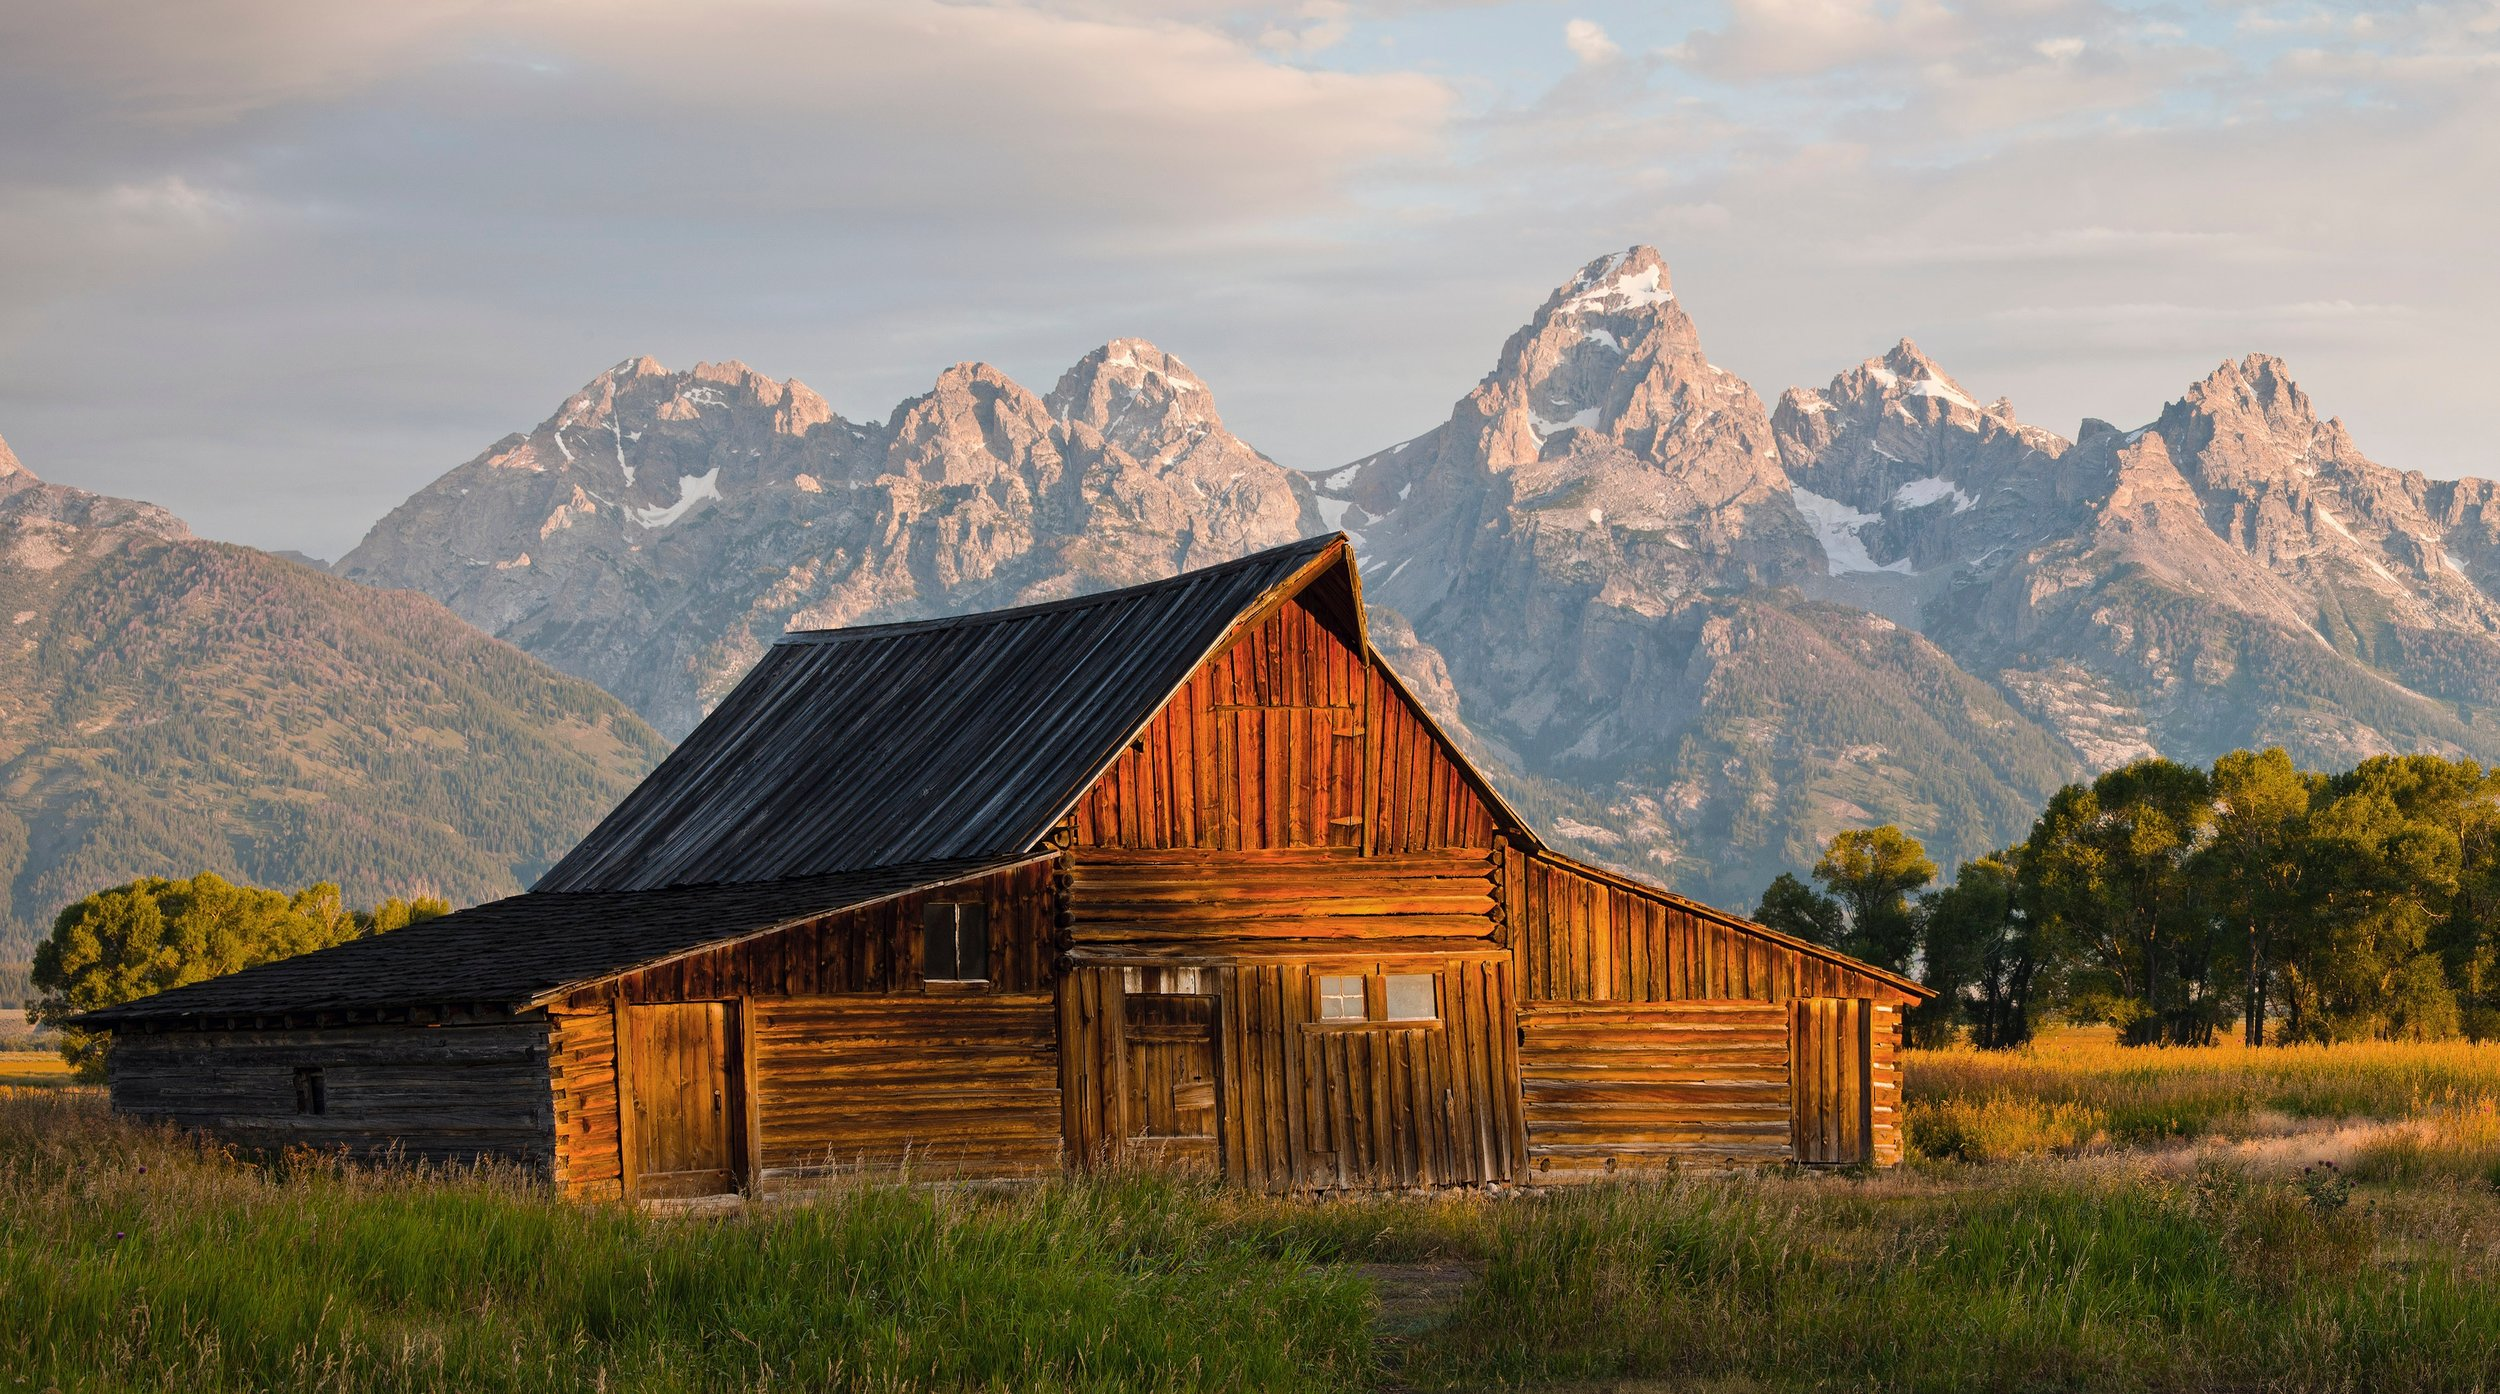 teton-mountains-wyoming.jpg